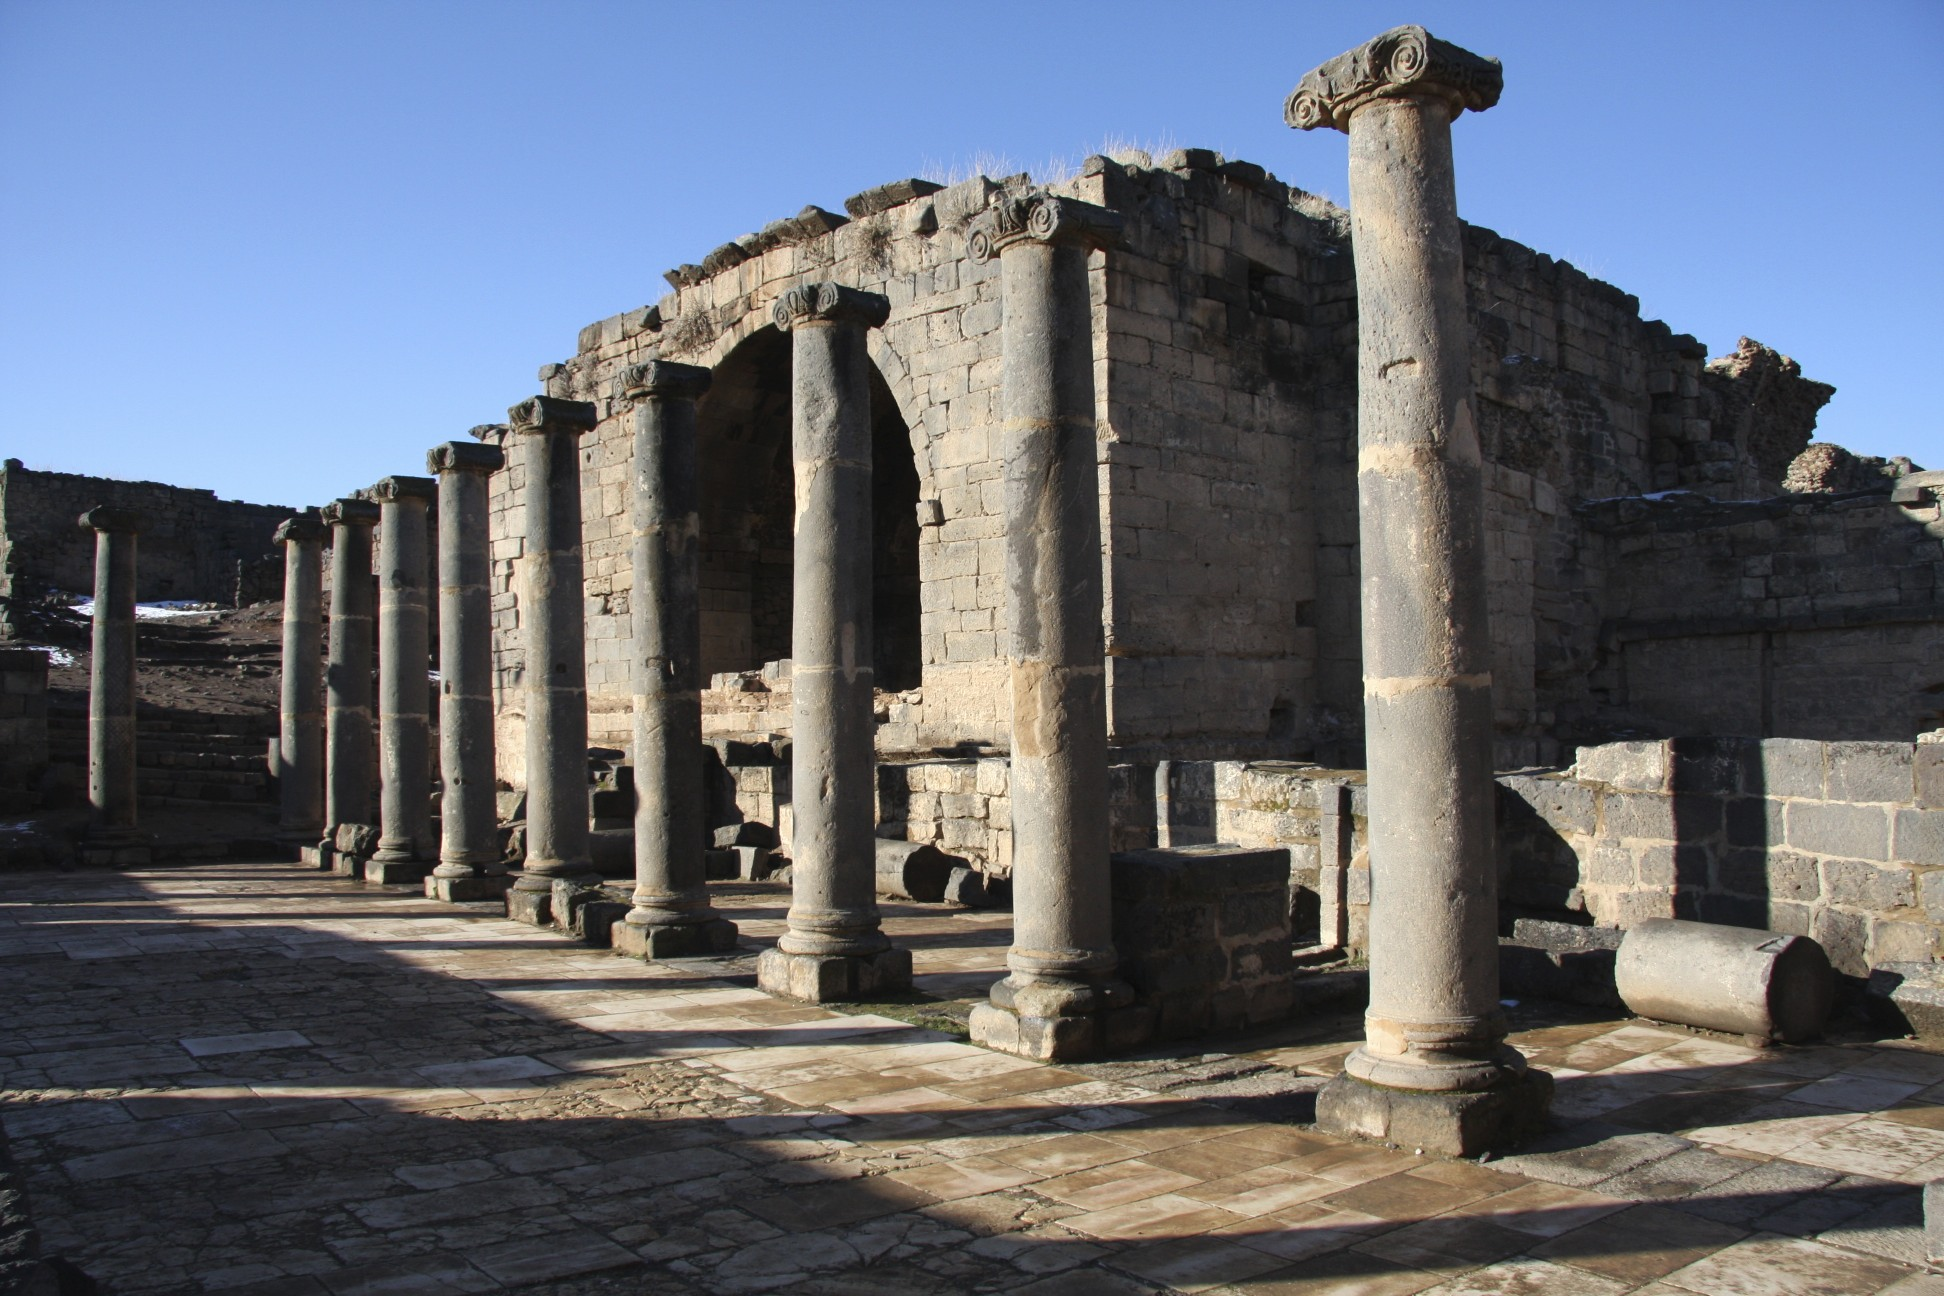 The ancient Roman city of Bosra